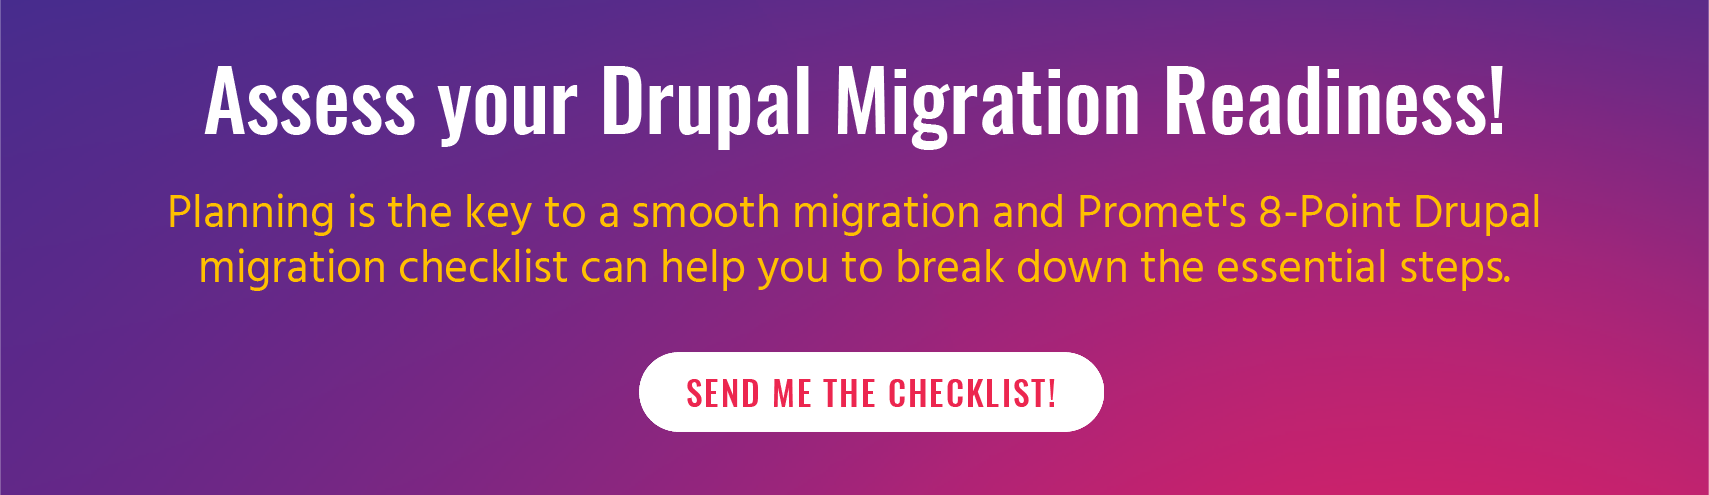 Drupal 9 migration readiness checklist